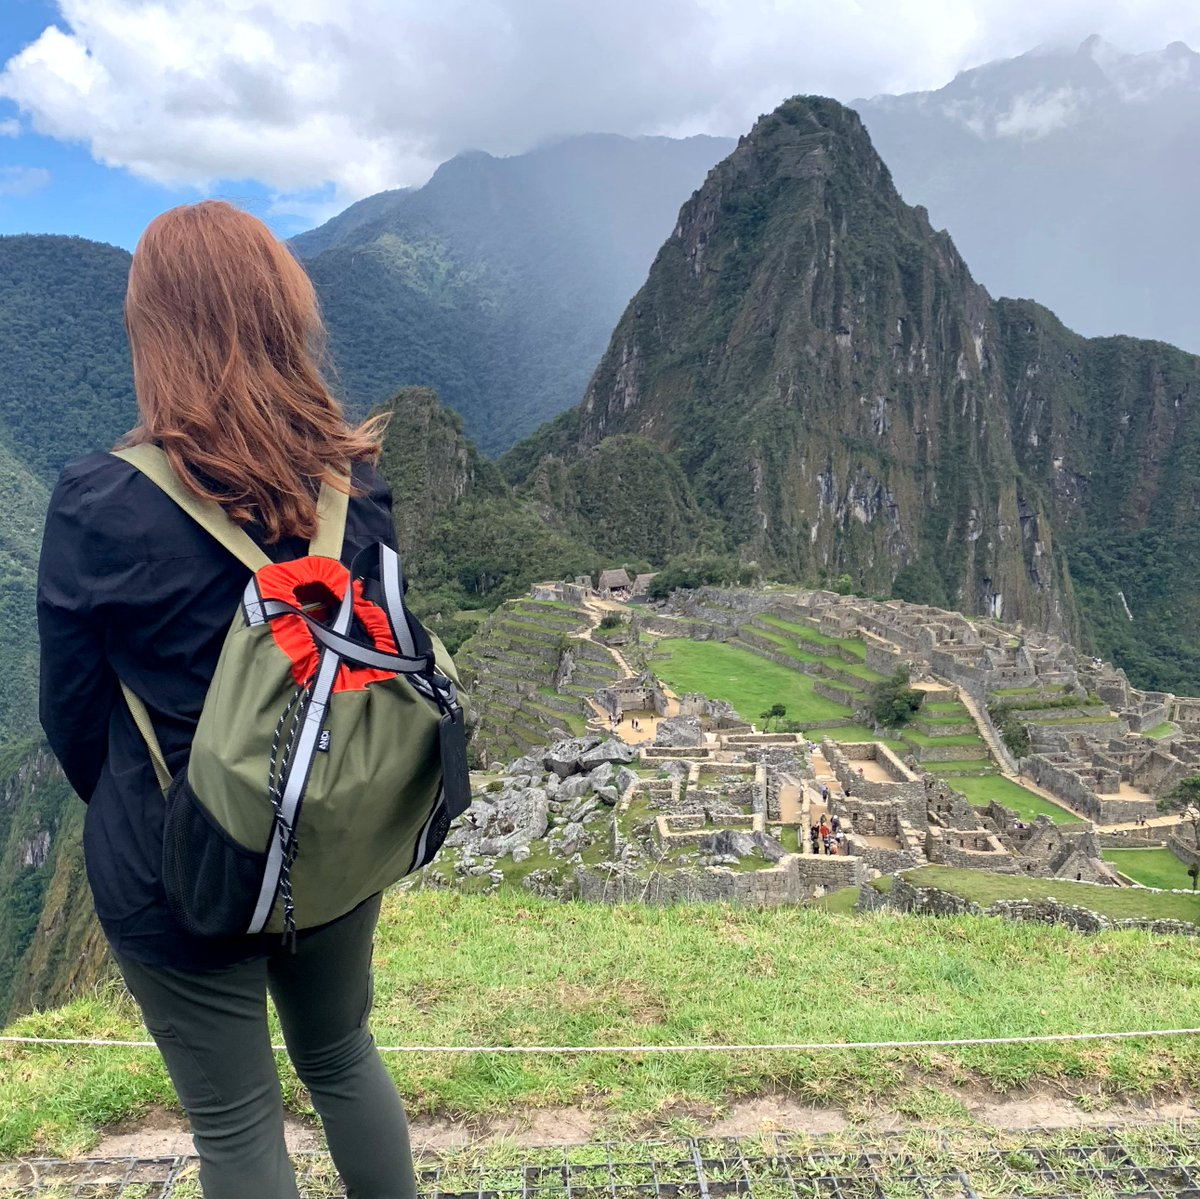 Lets get outside more. The view of mother nature is simply wonderful. @katiedoch in Machu Picchu.